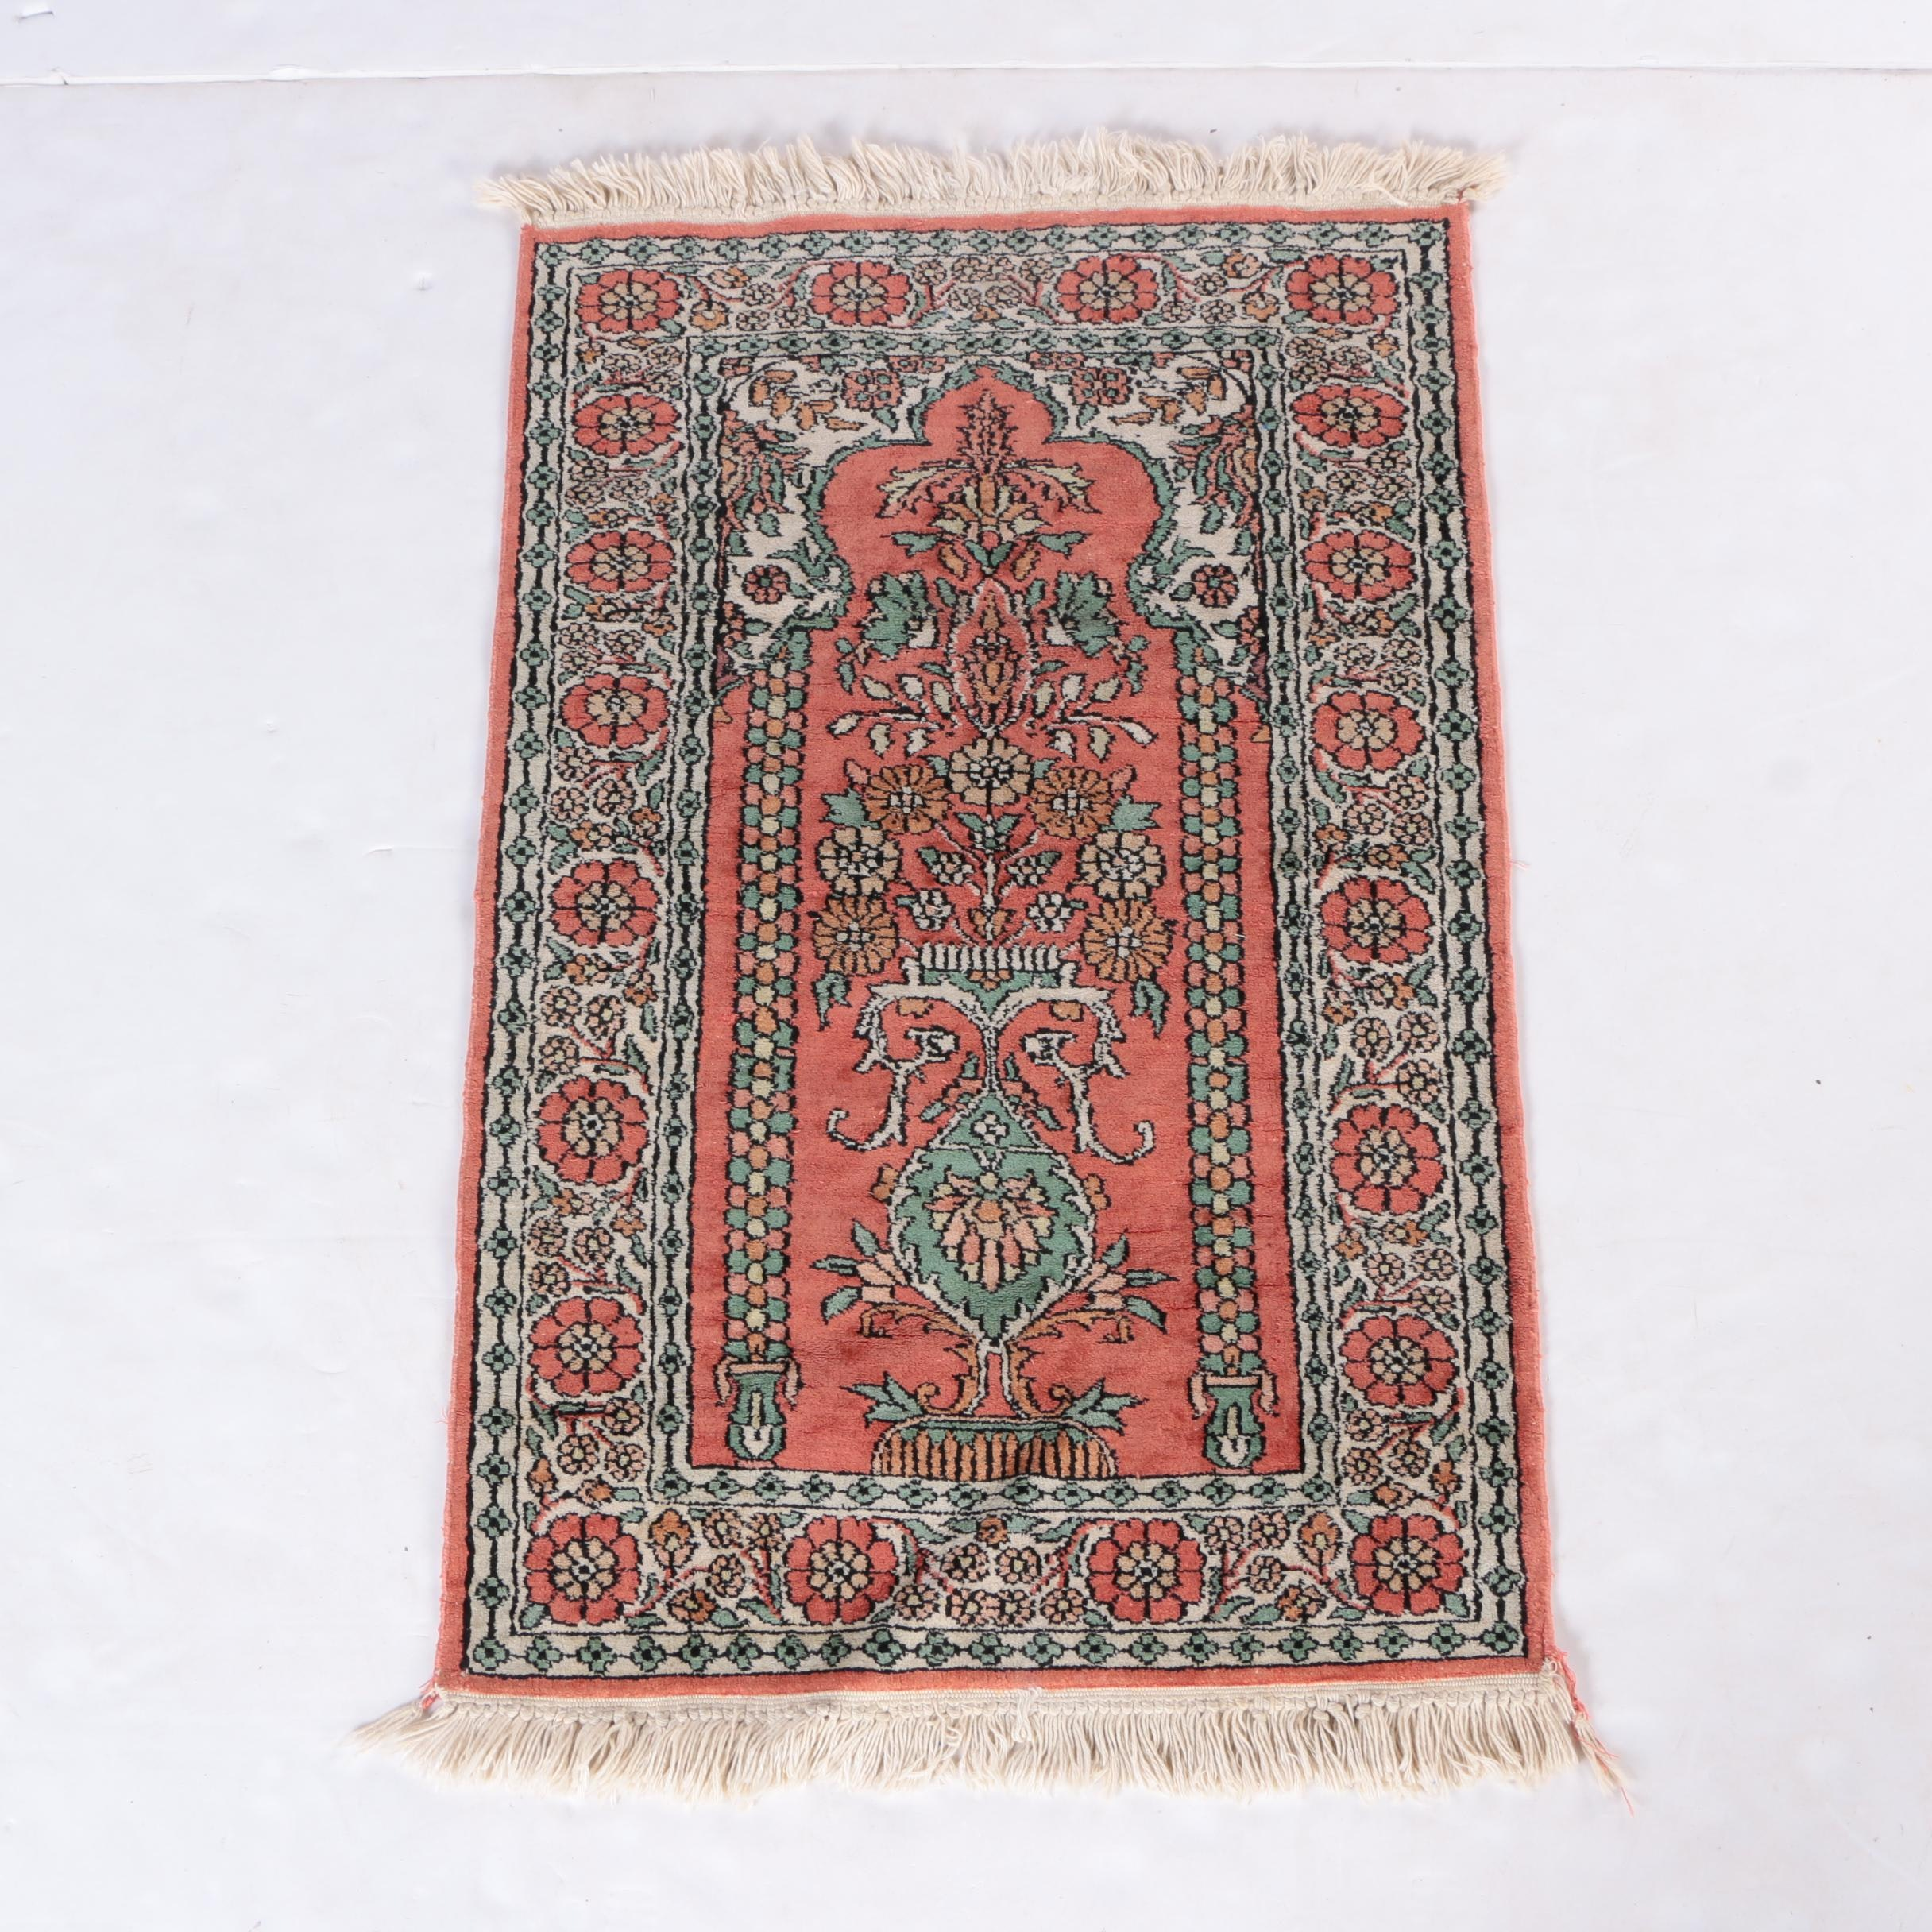 Hand-Knotted Wool Prayer Rug